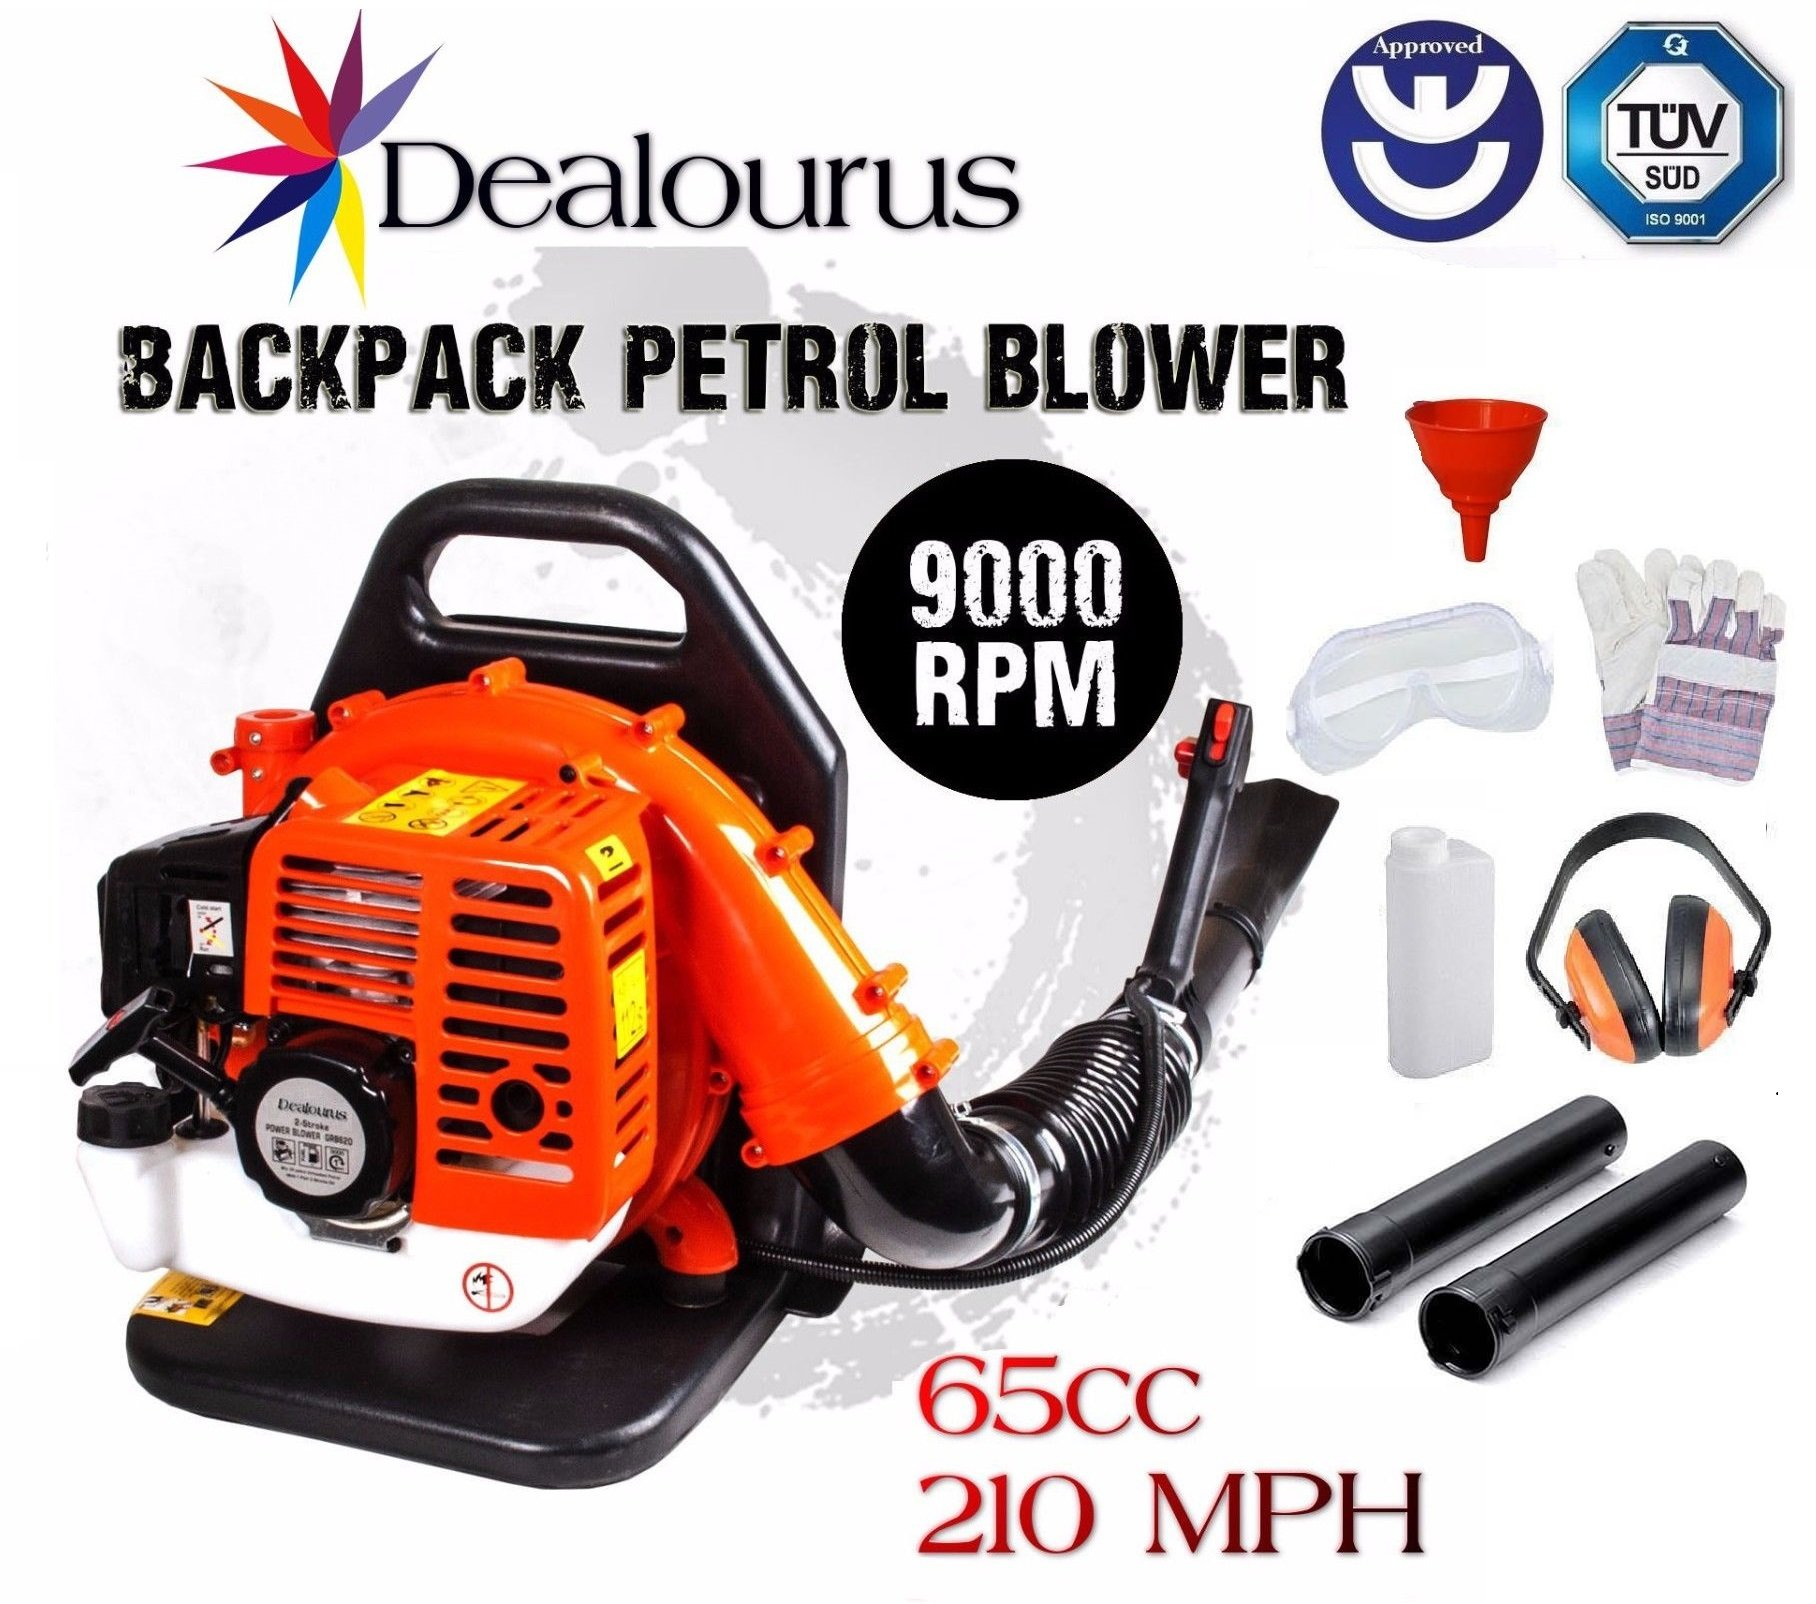 Dealourus 2019 75cc Petrol Backpack Leaf Blower, Extremely Powerful – 240MPH Lightweight With New and Improved Padded…